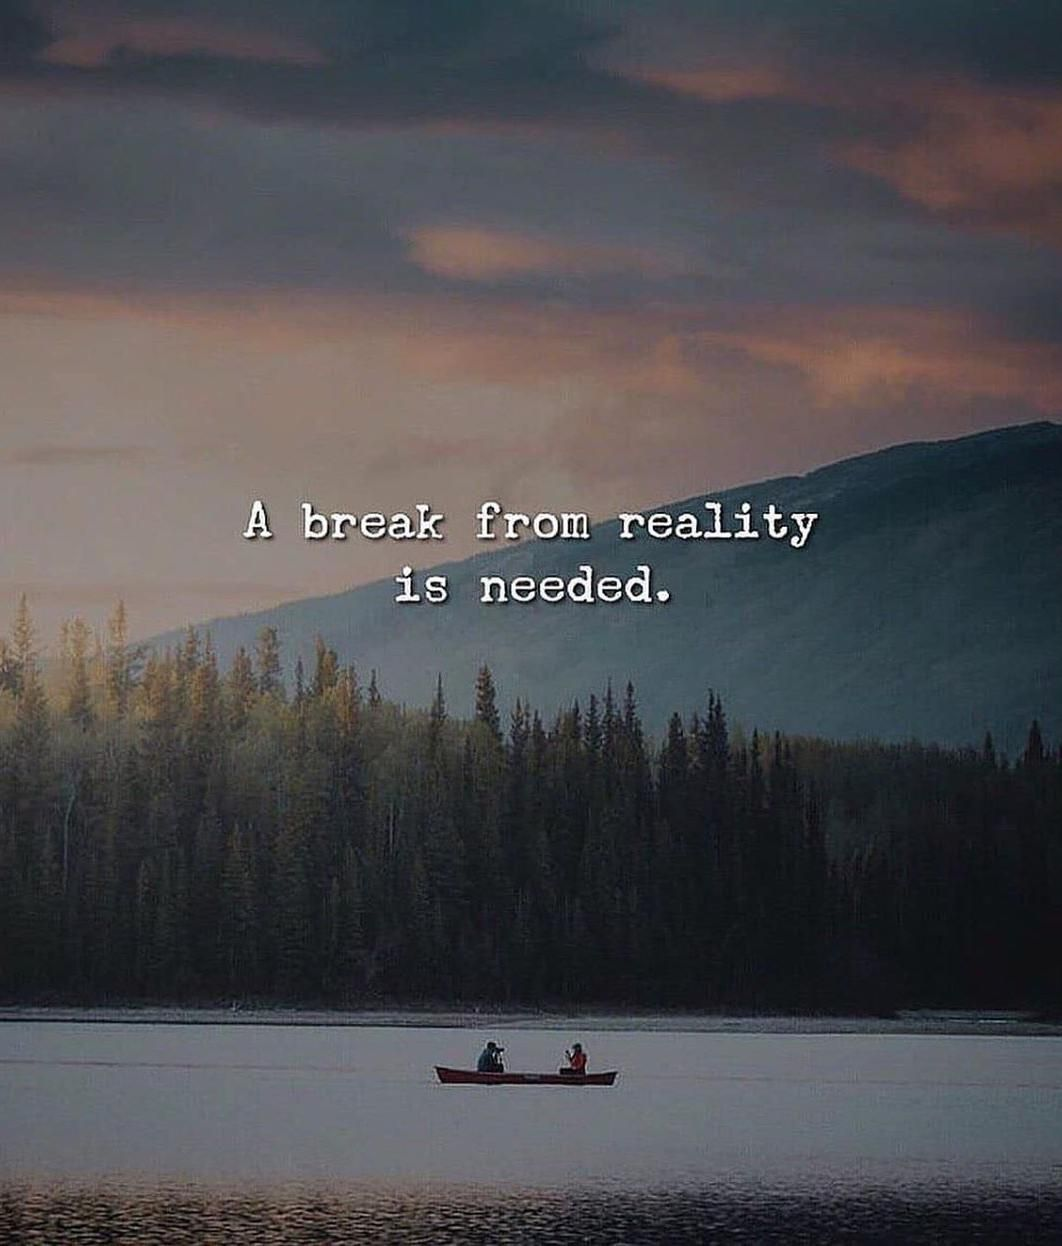 60 Motivational Life Quotes To Start Your New Day Motivational Quotes For Life Needing A Break Quotes Work Motivational Quotes